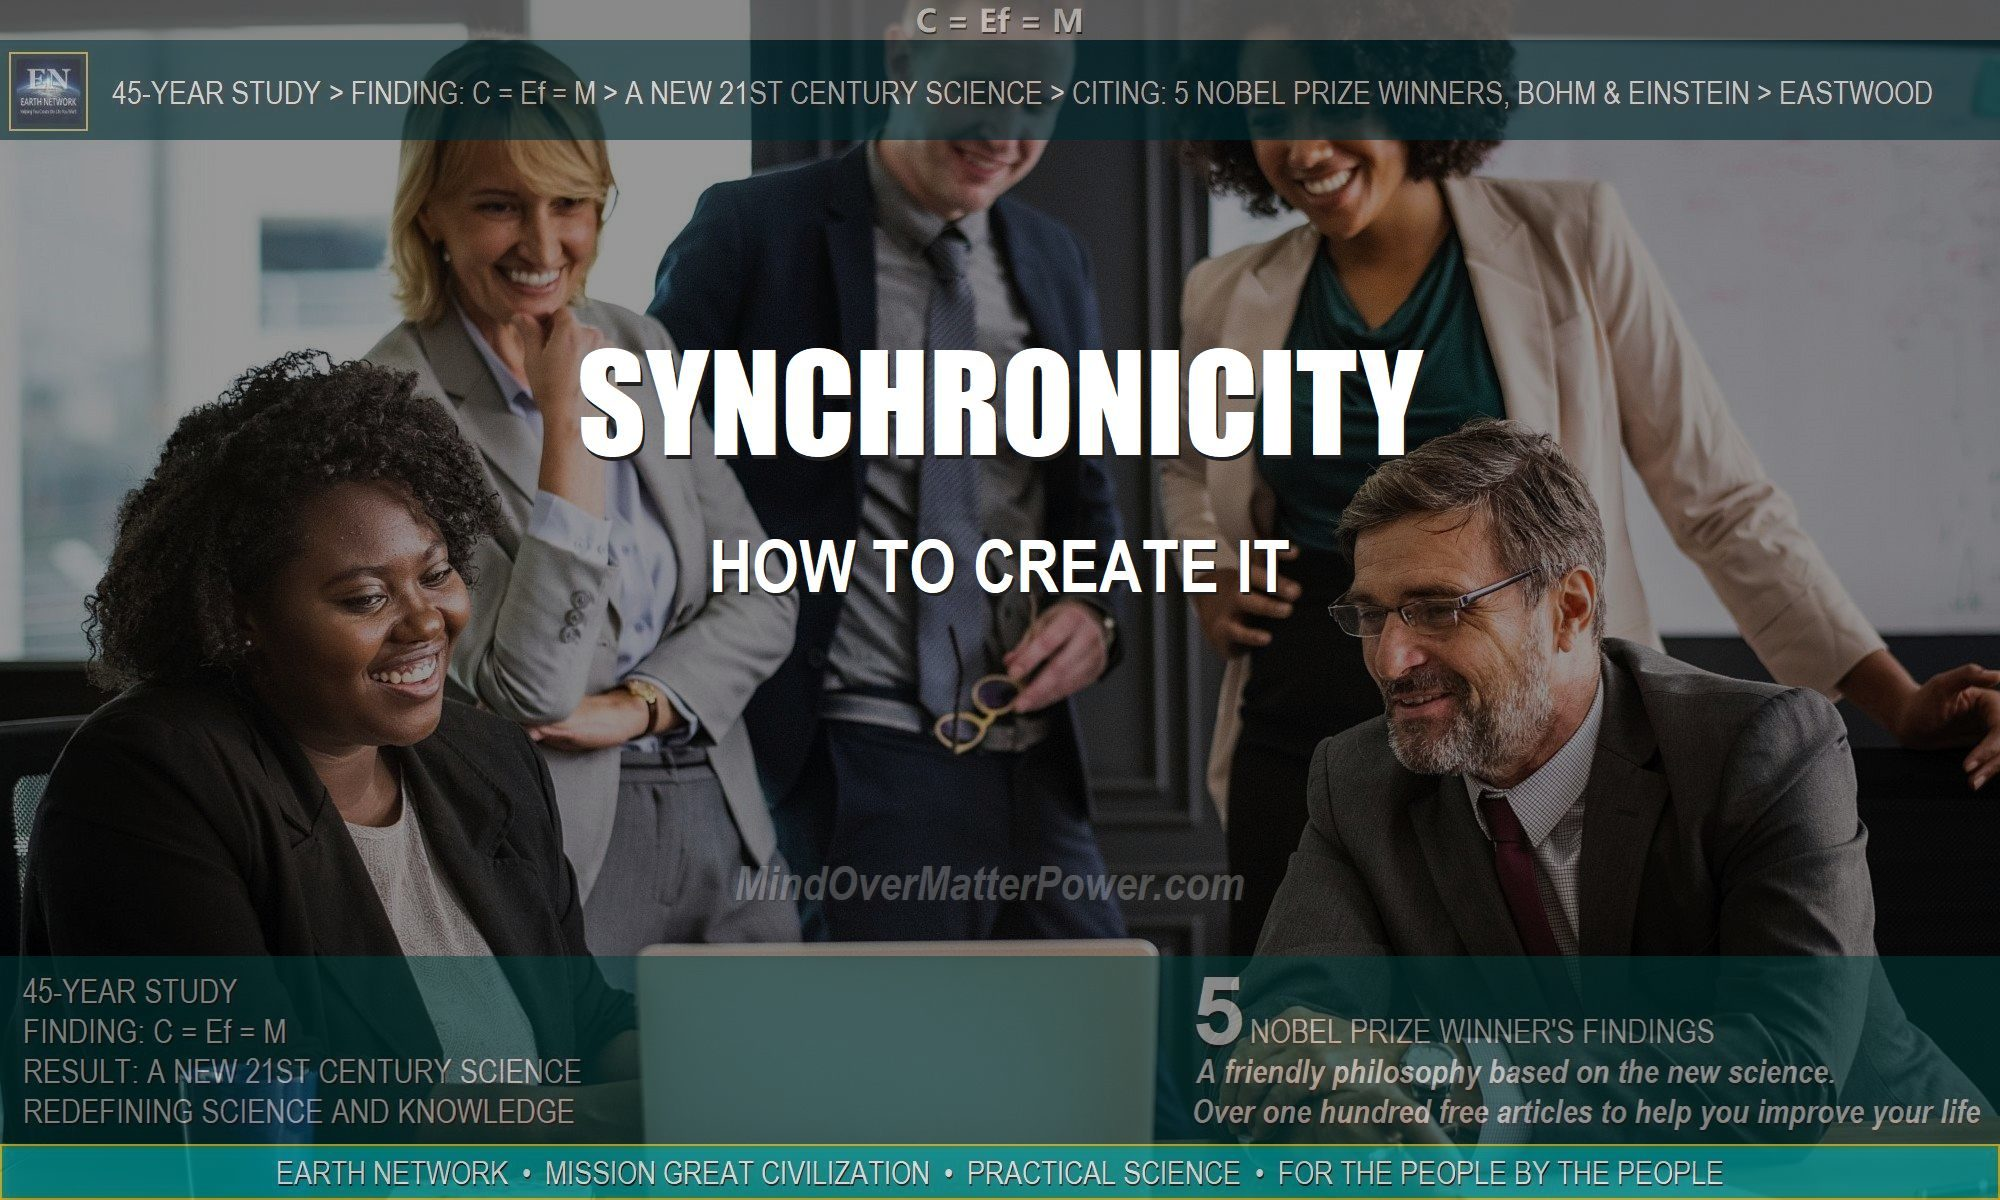 People coming together represents synchronicity. Learn how to create synchronistic events with your thoughts.